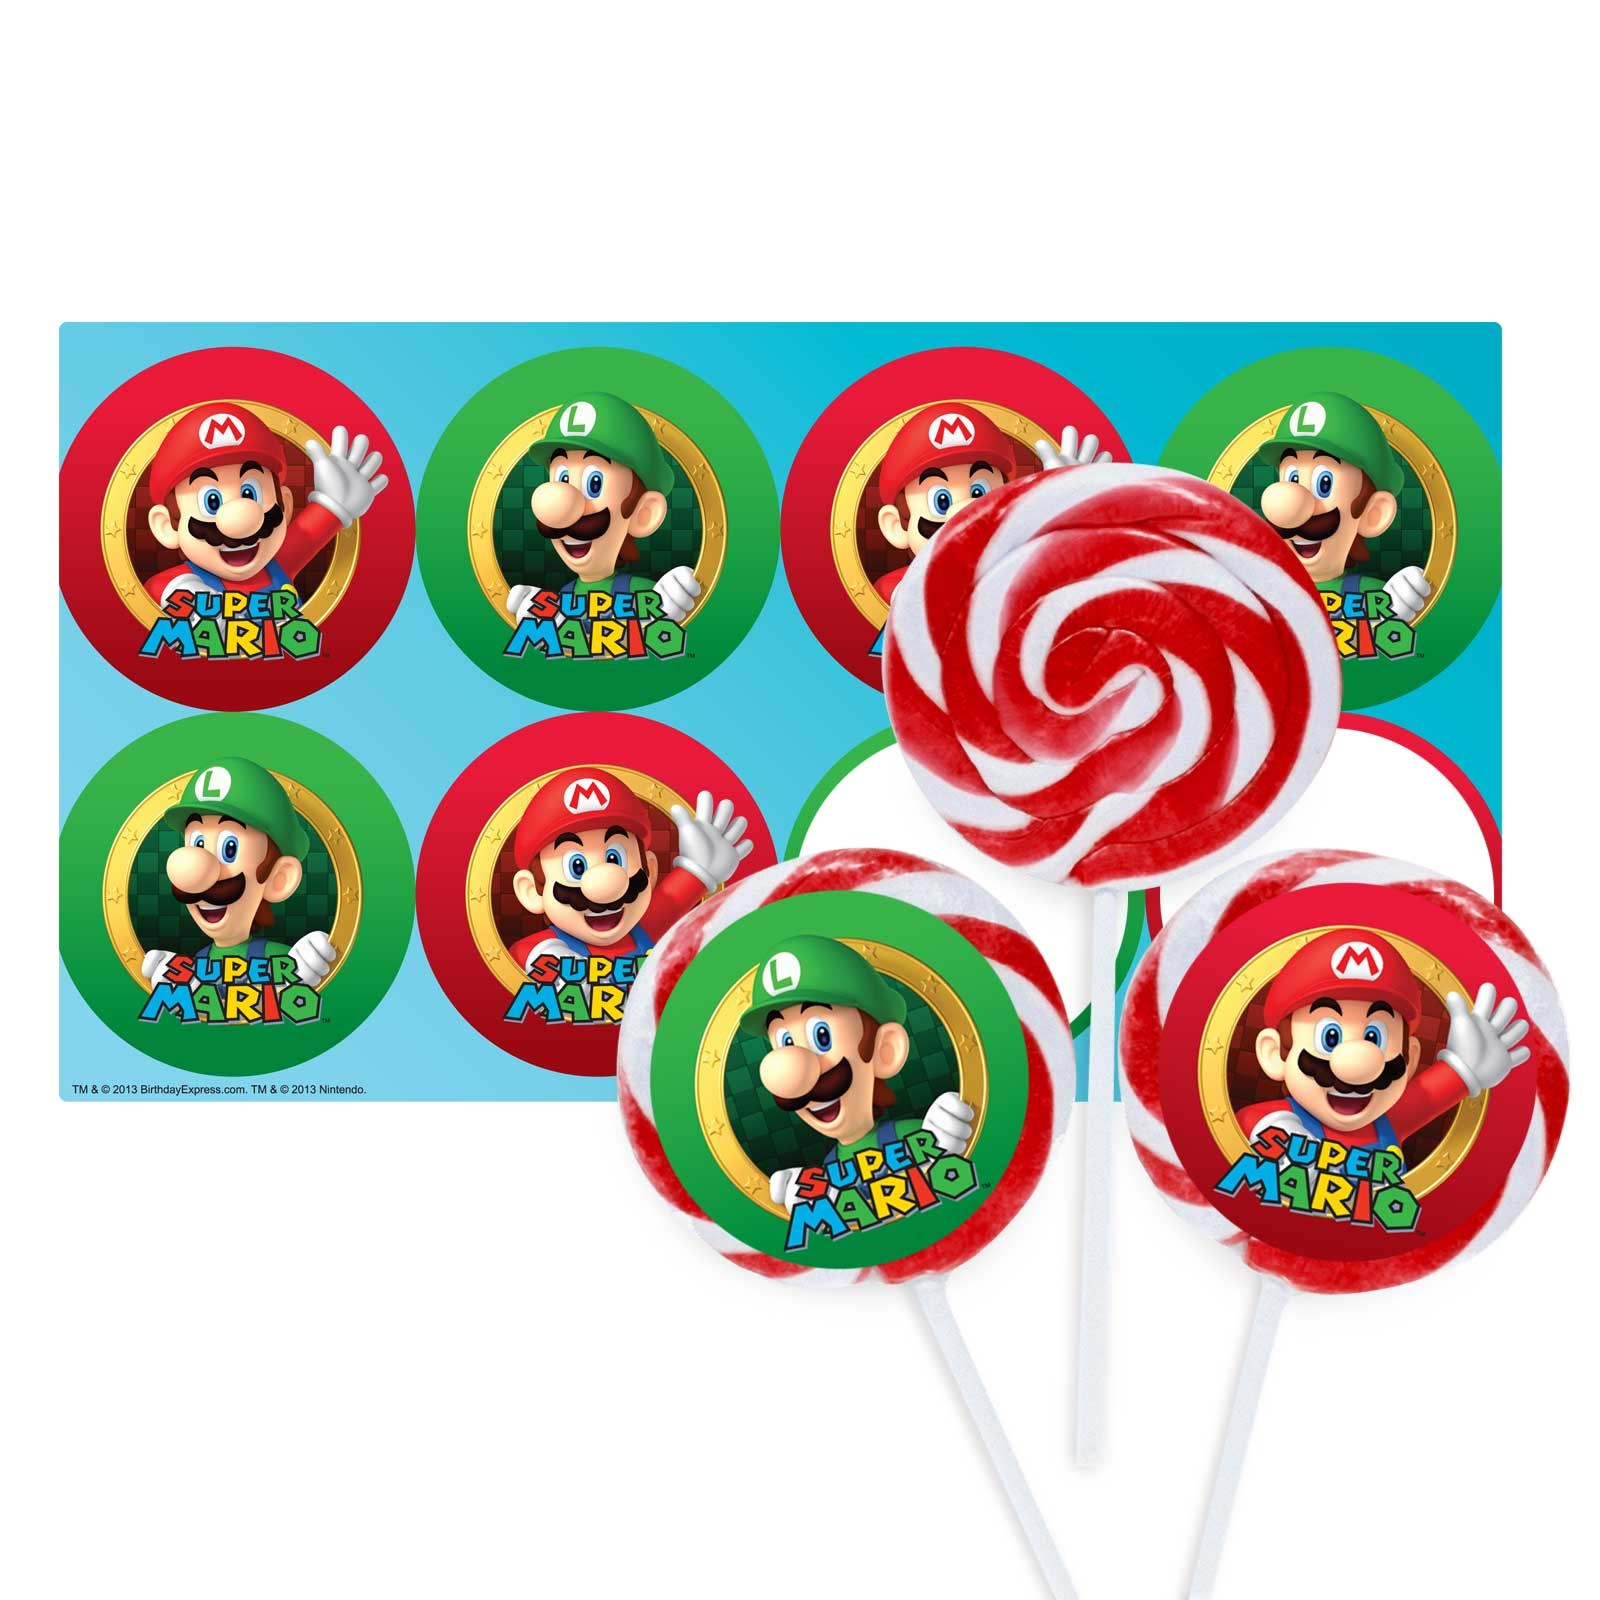 Super Mario Party Deluxe Lollipop Favor Kit